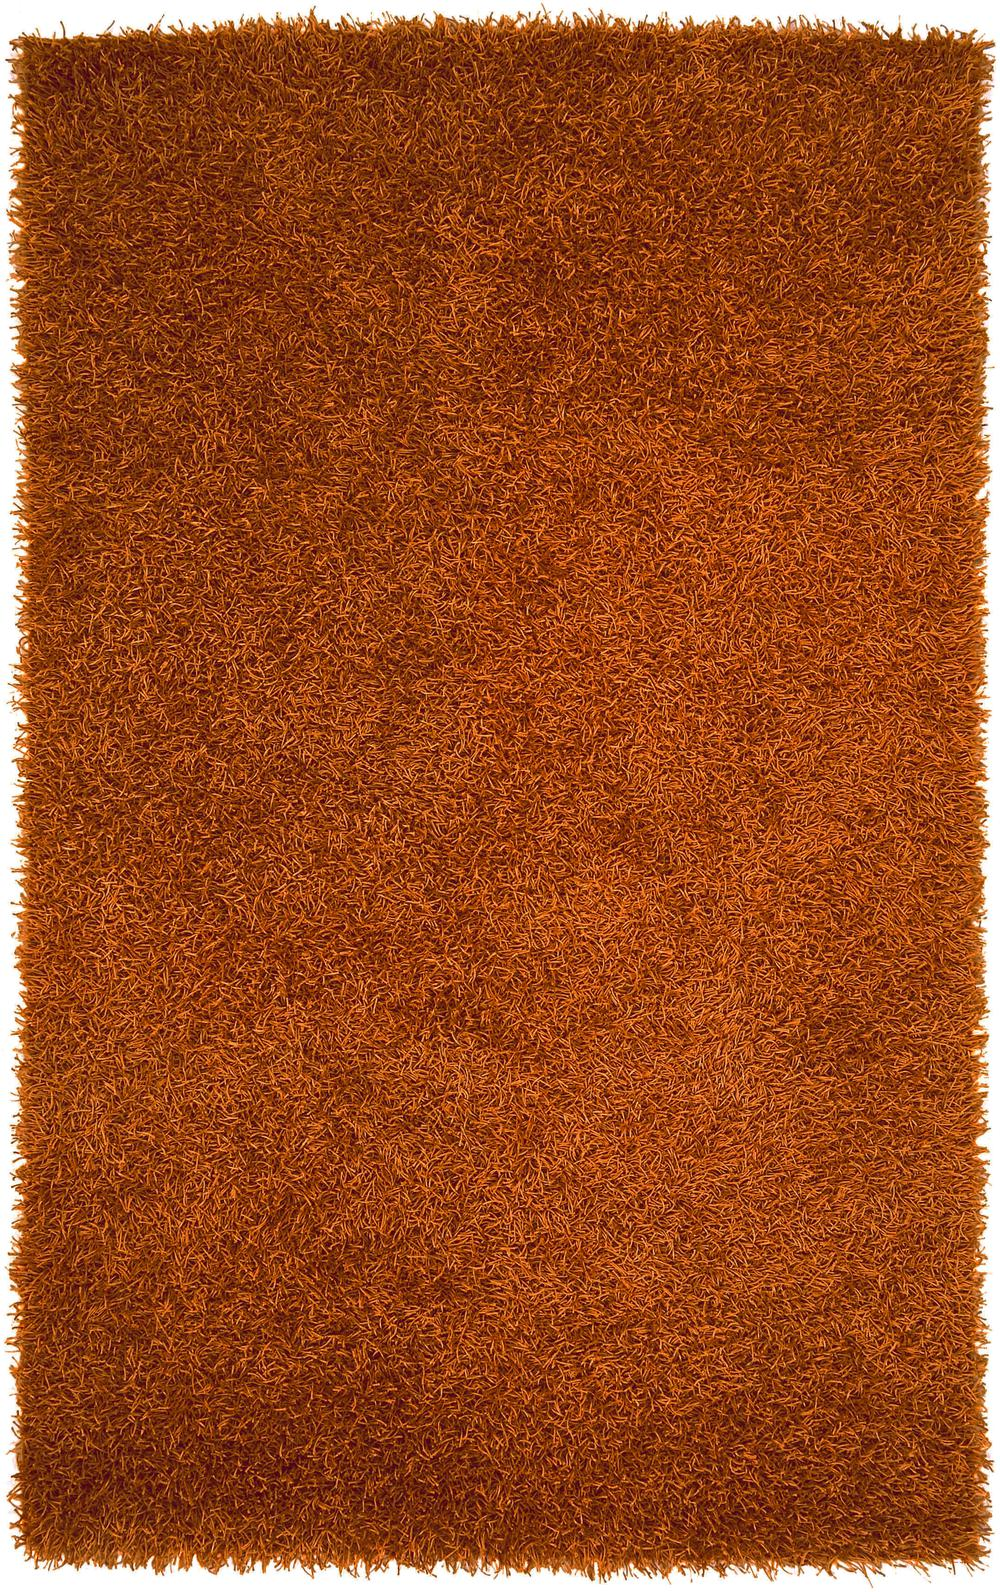 Surya Vivid Viv804 Orange Area Rug Free Shipping